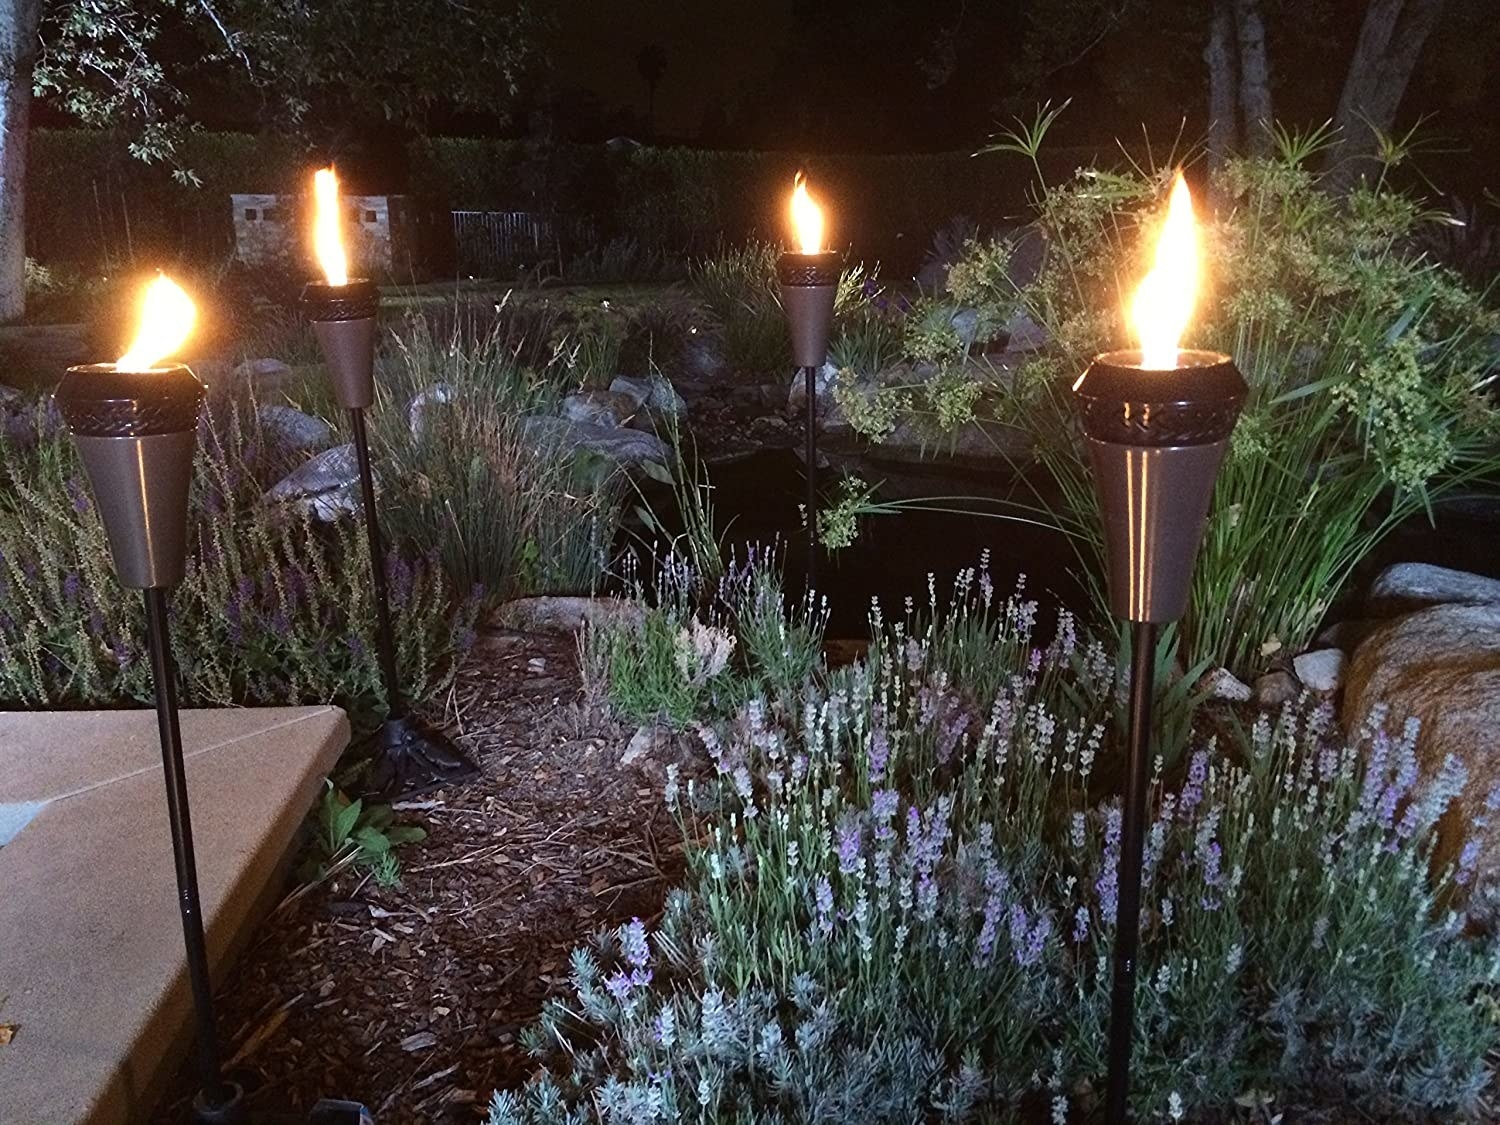 four gun metal tiki torches in a backyard at night